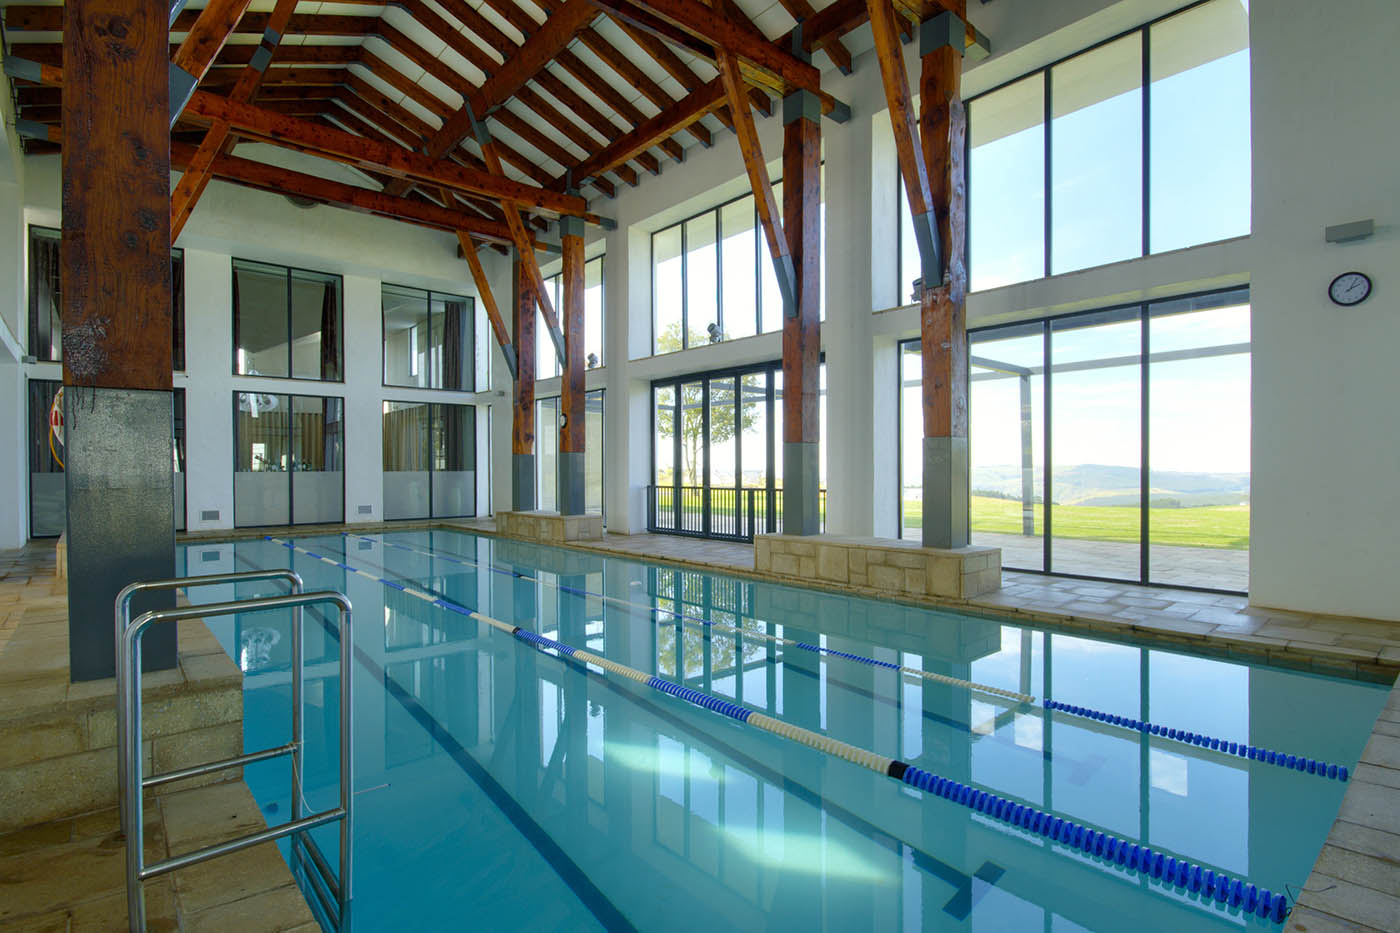 gym-garlington-estate-pool-luxury-country-development-hilton-midlands-meander-countryside-contemporary-lifestyle-kzn